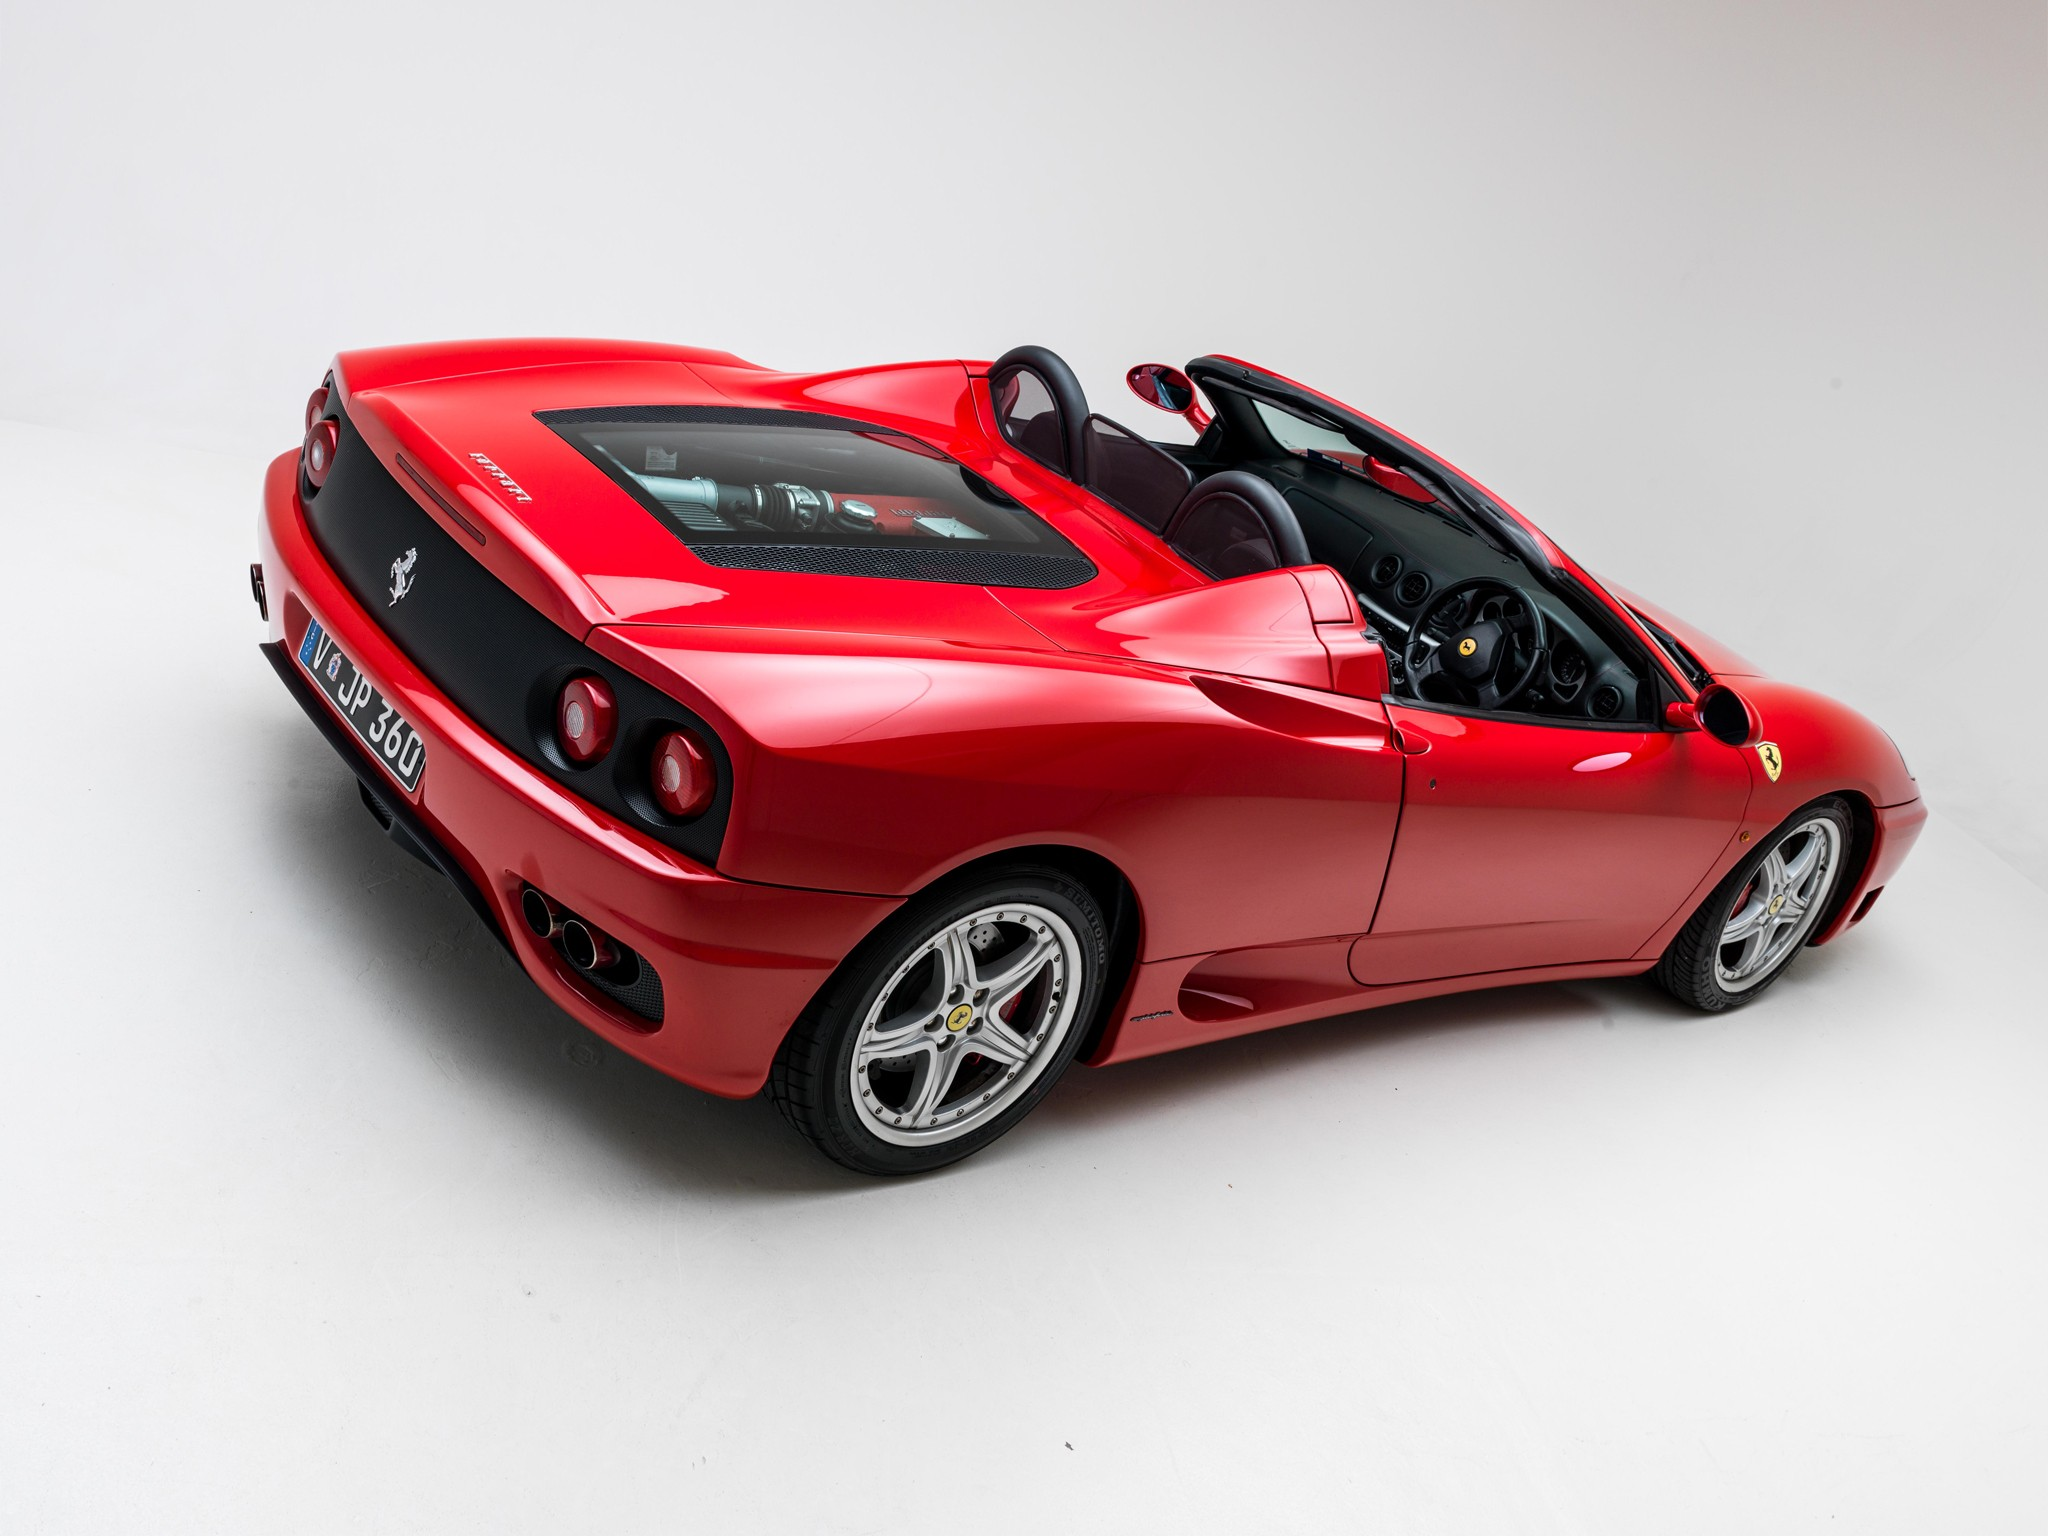 ferrari 360 spider specs 2000 2001 2002 2003 2004. Black Bedroom Furniture Sets. Home Design Ideas